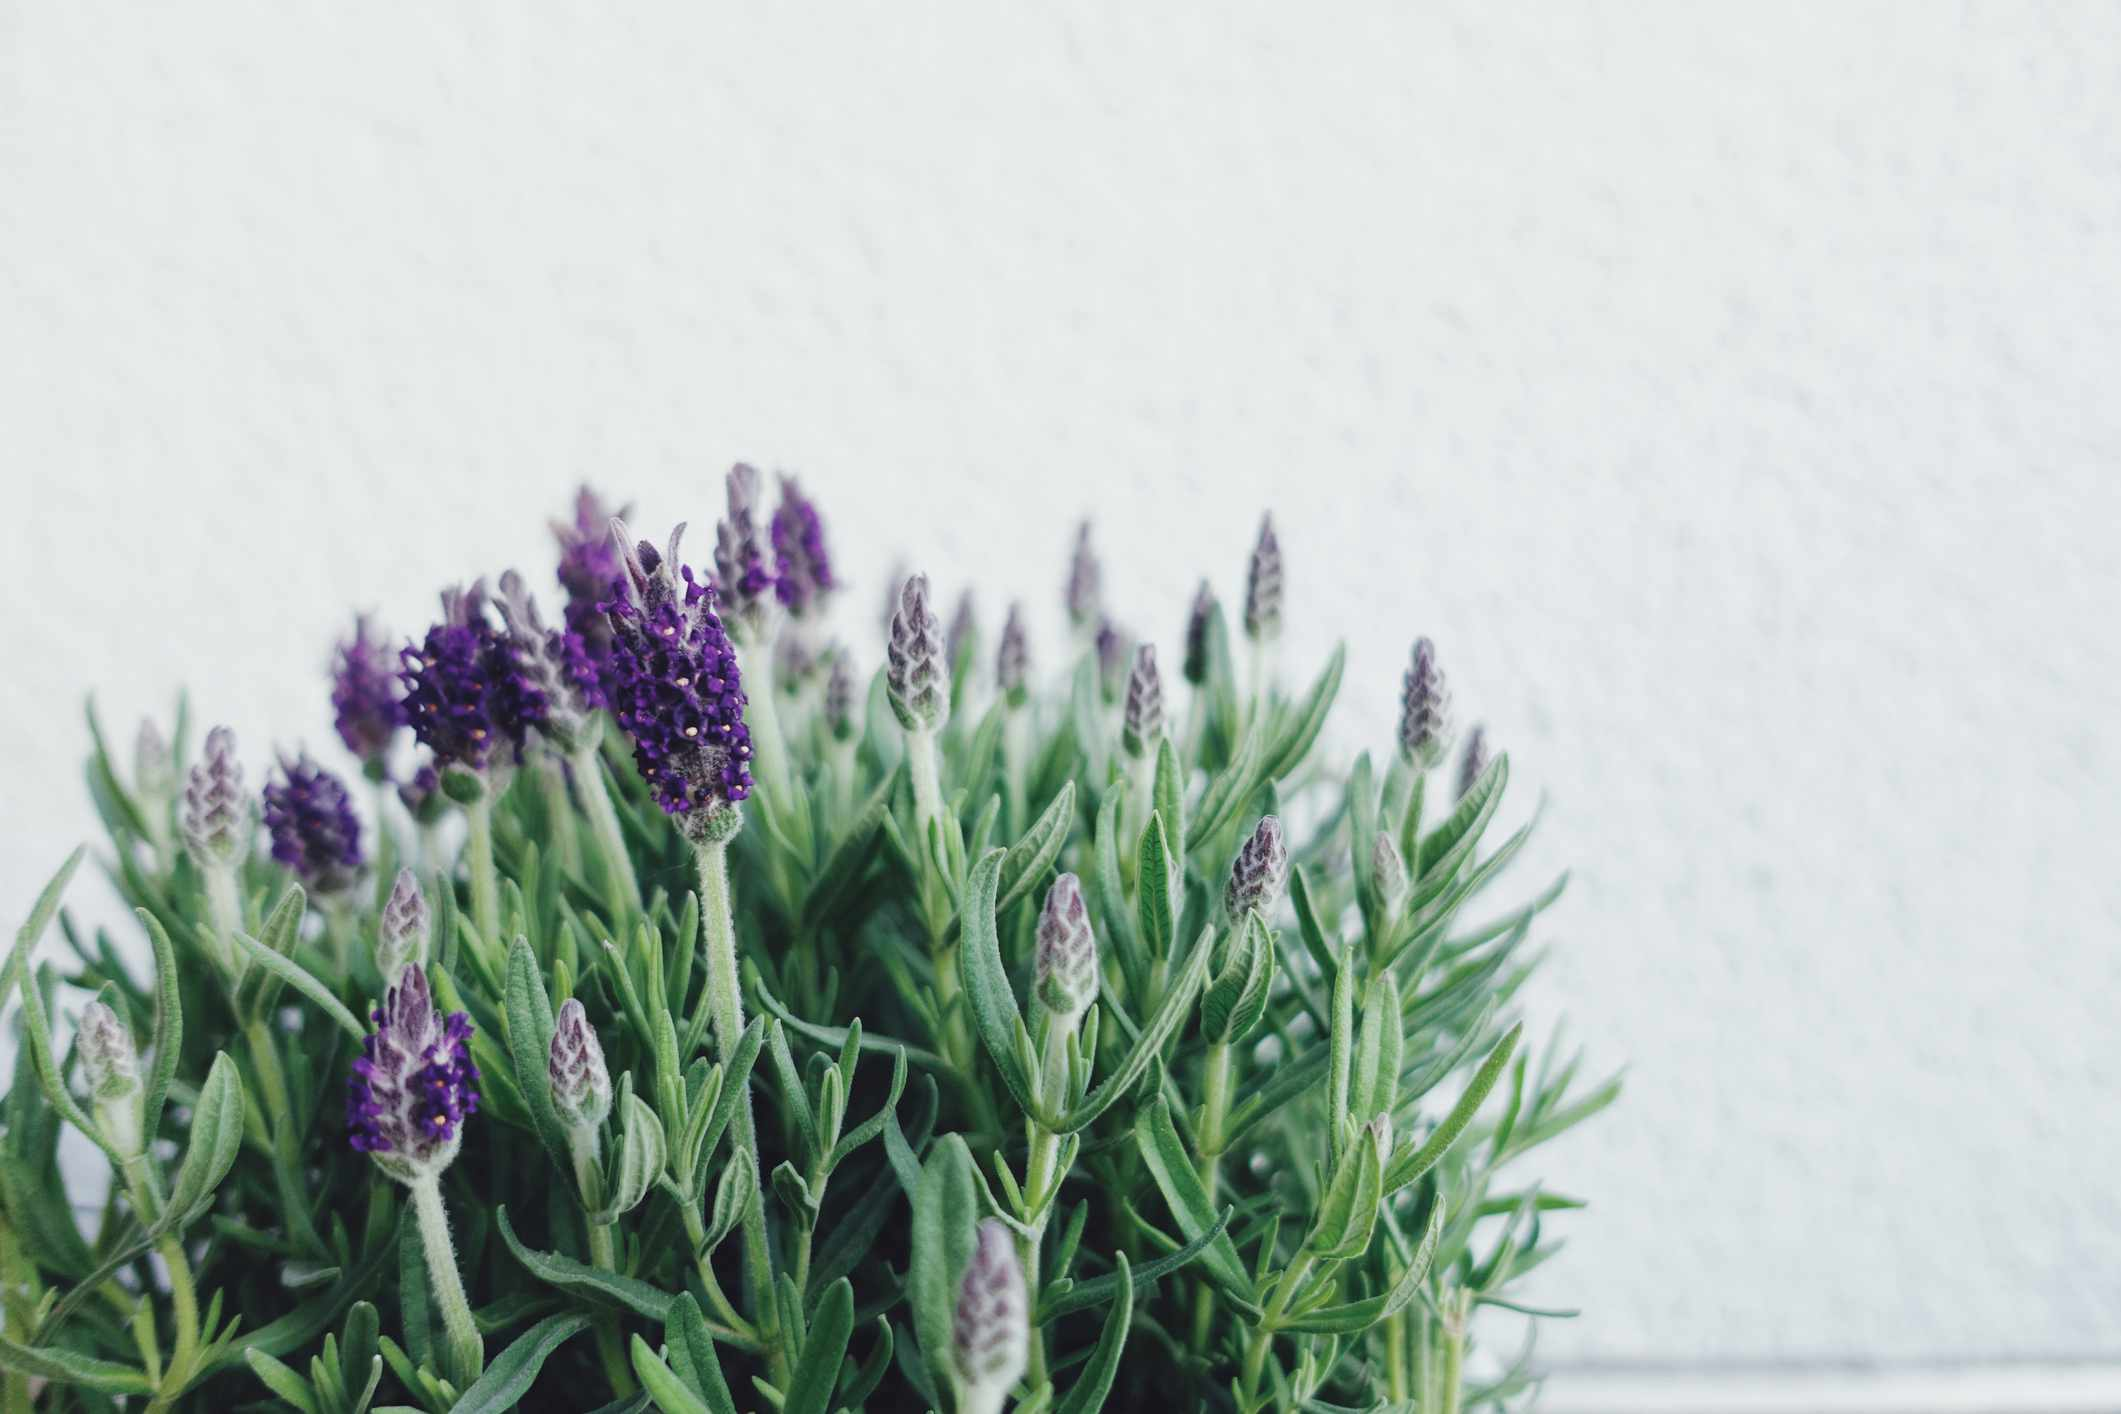 Close up of lavender blooming in a pot against a white wall